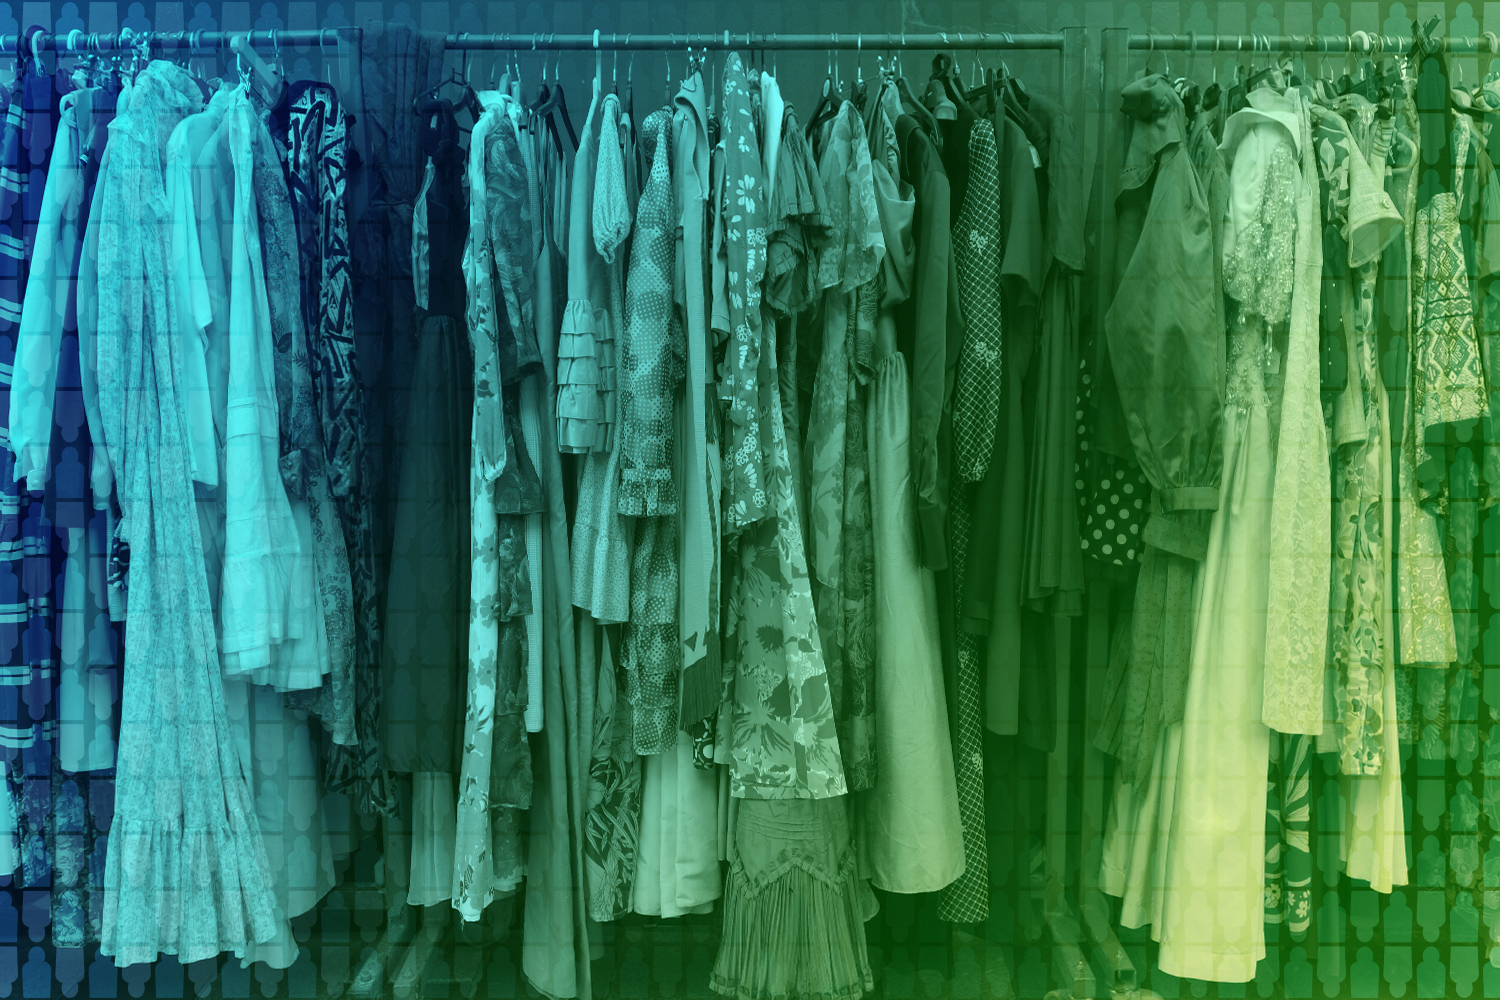 color-treated photo of women's clothing on rack